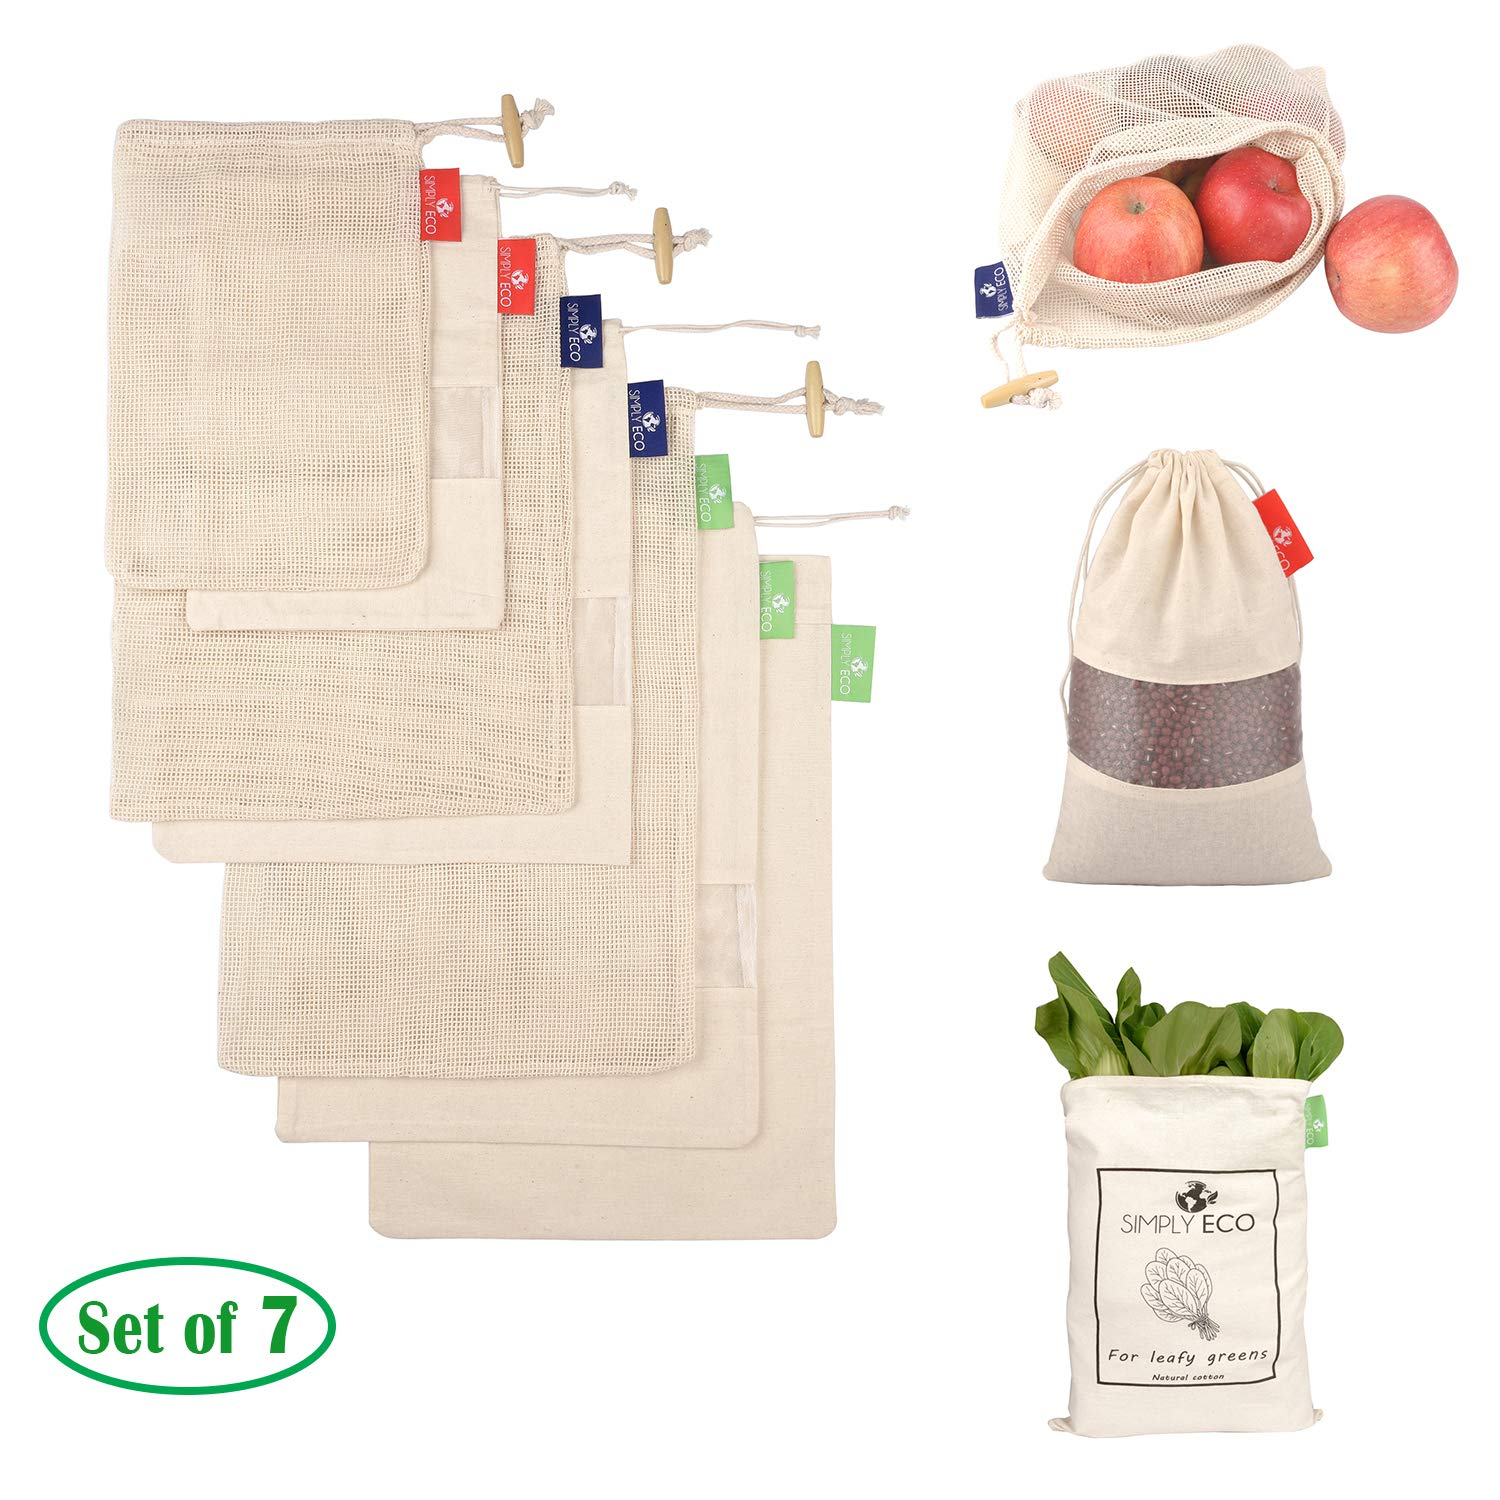 SIMPLY ECO 7 reusable natural cotton produce bags with drawstring. Mesh bags for fruits and veggies, muslin bags with see through window for bulk food storage. Zero waste mesh eco bags